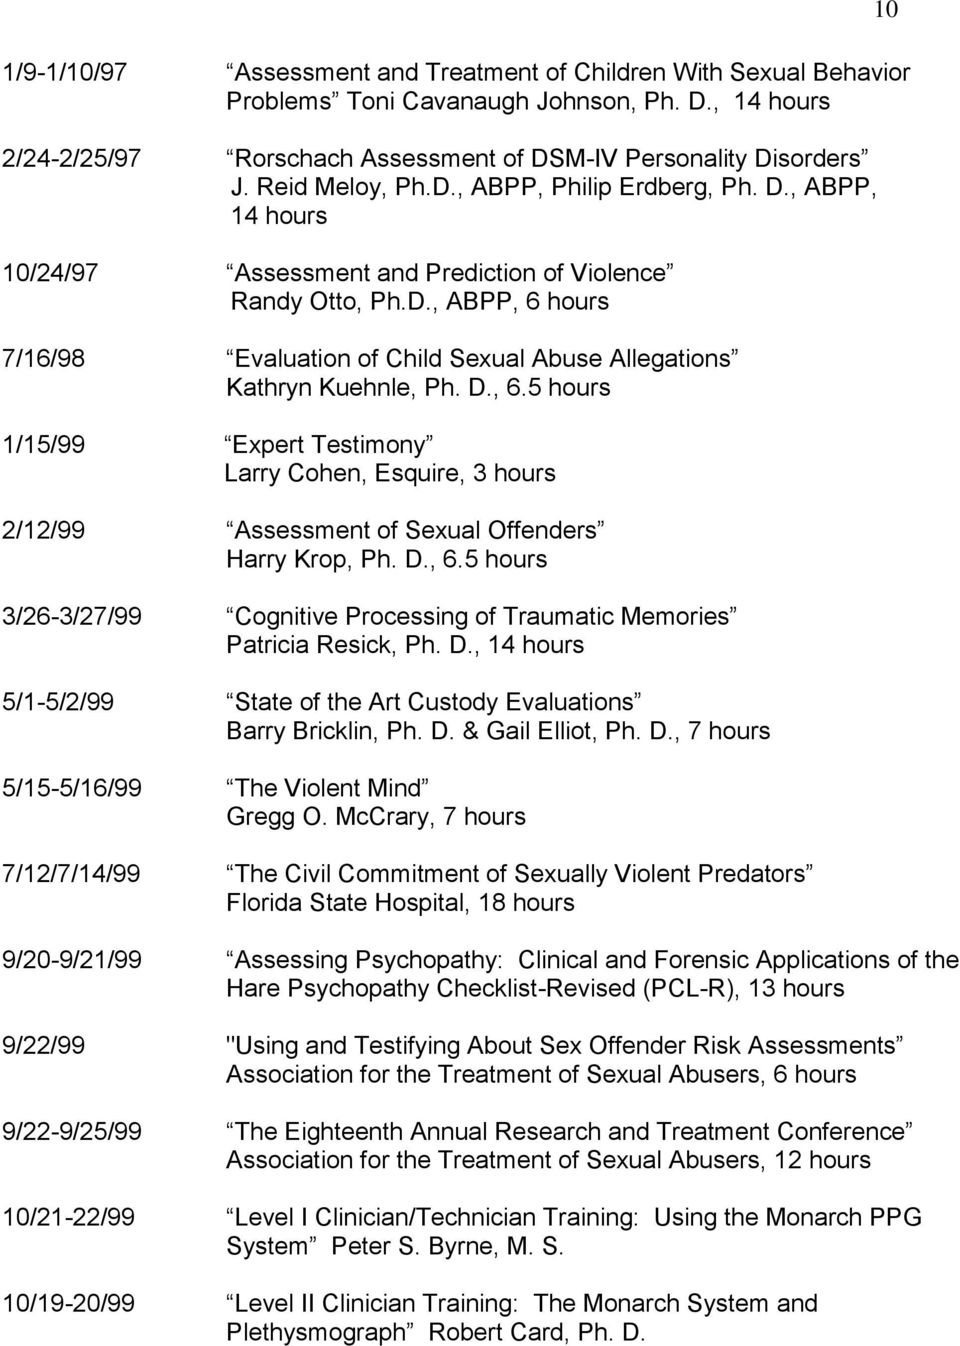 D., 6.5 hours 1/15/99 Expert Testimony Larry Cohen, Esquire, 3 hours 2/12/99 Assessment of Sexual Offenders Harry Krop, Ph. D., 6.5 hours 3/26-3/27/99 Cognitive Processing of Traumatic Memories Patricia Resick, Ph.